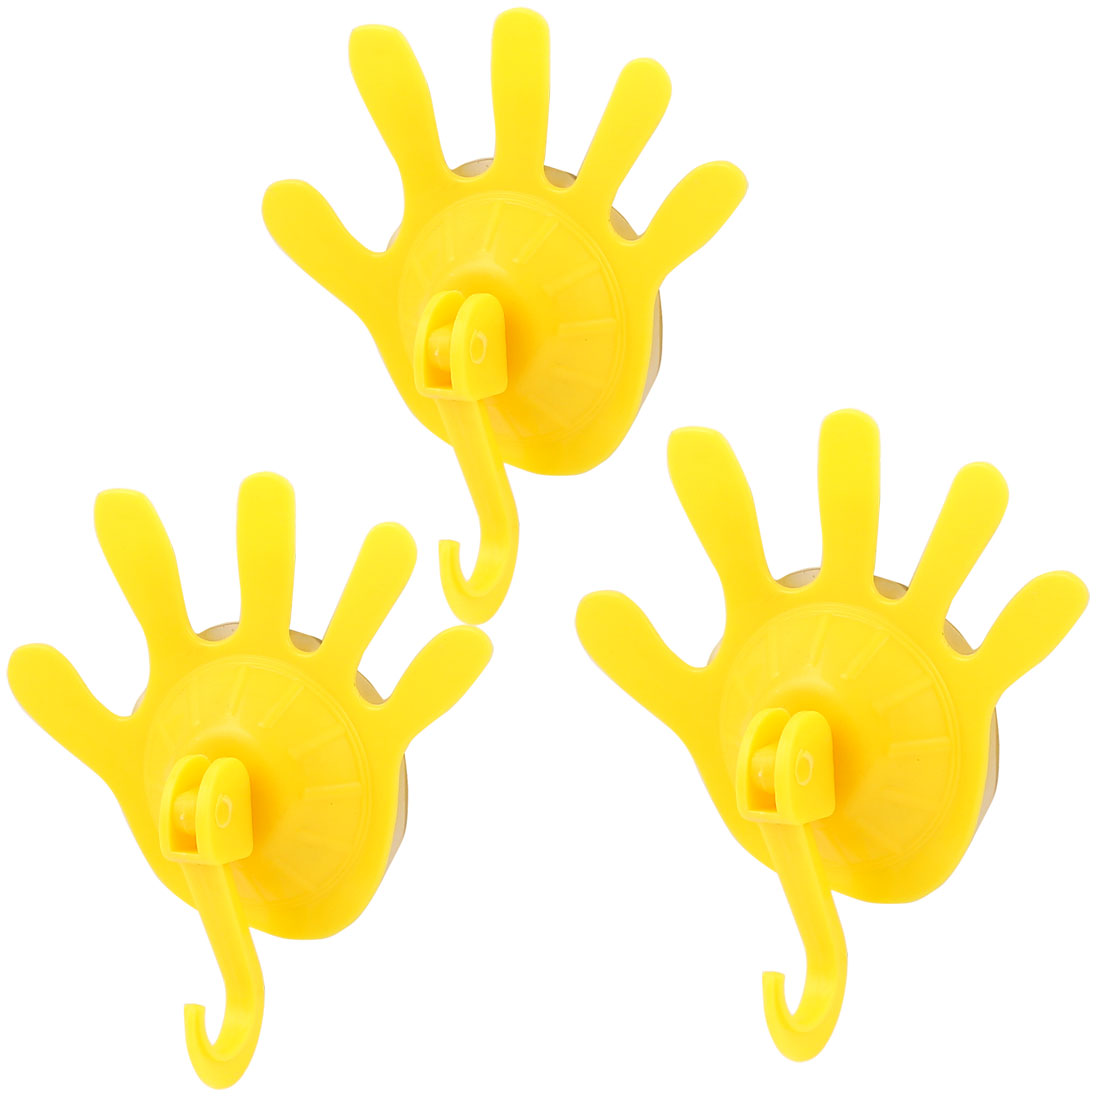 Plastic Palm Shape Suction Cup Hook Towel Clothes Holder Wall Hanger Yellow 3pcs